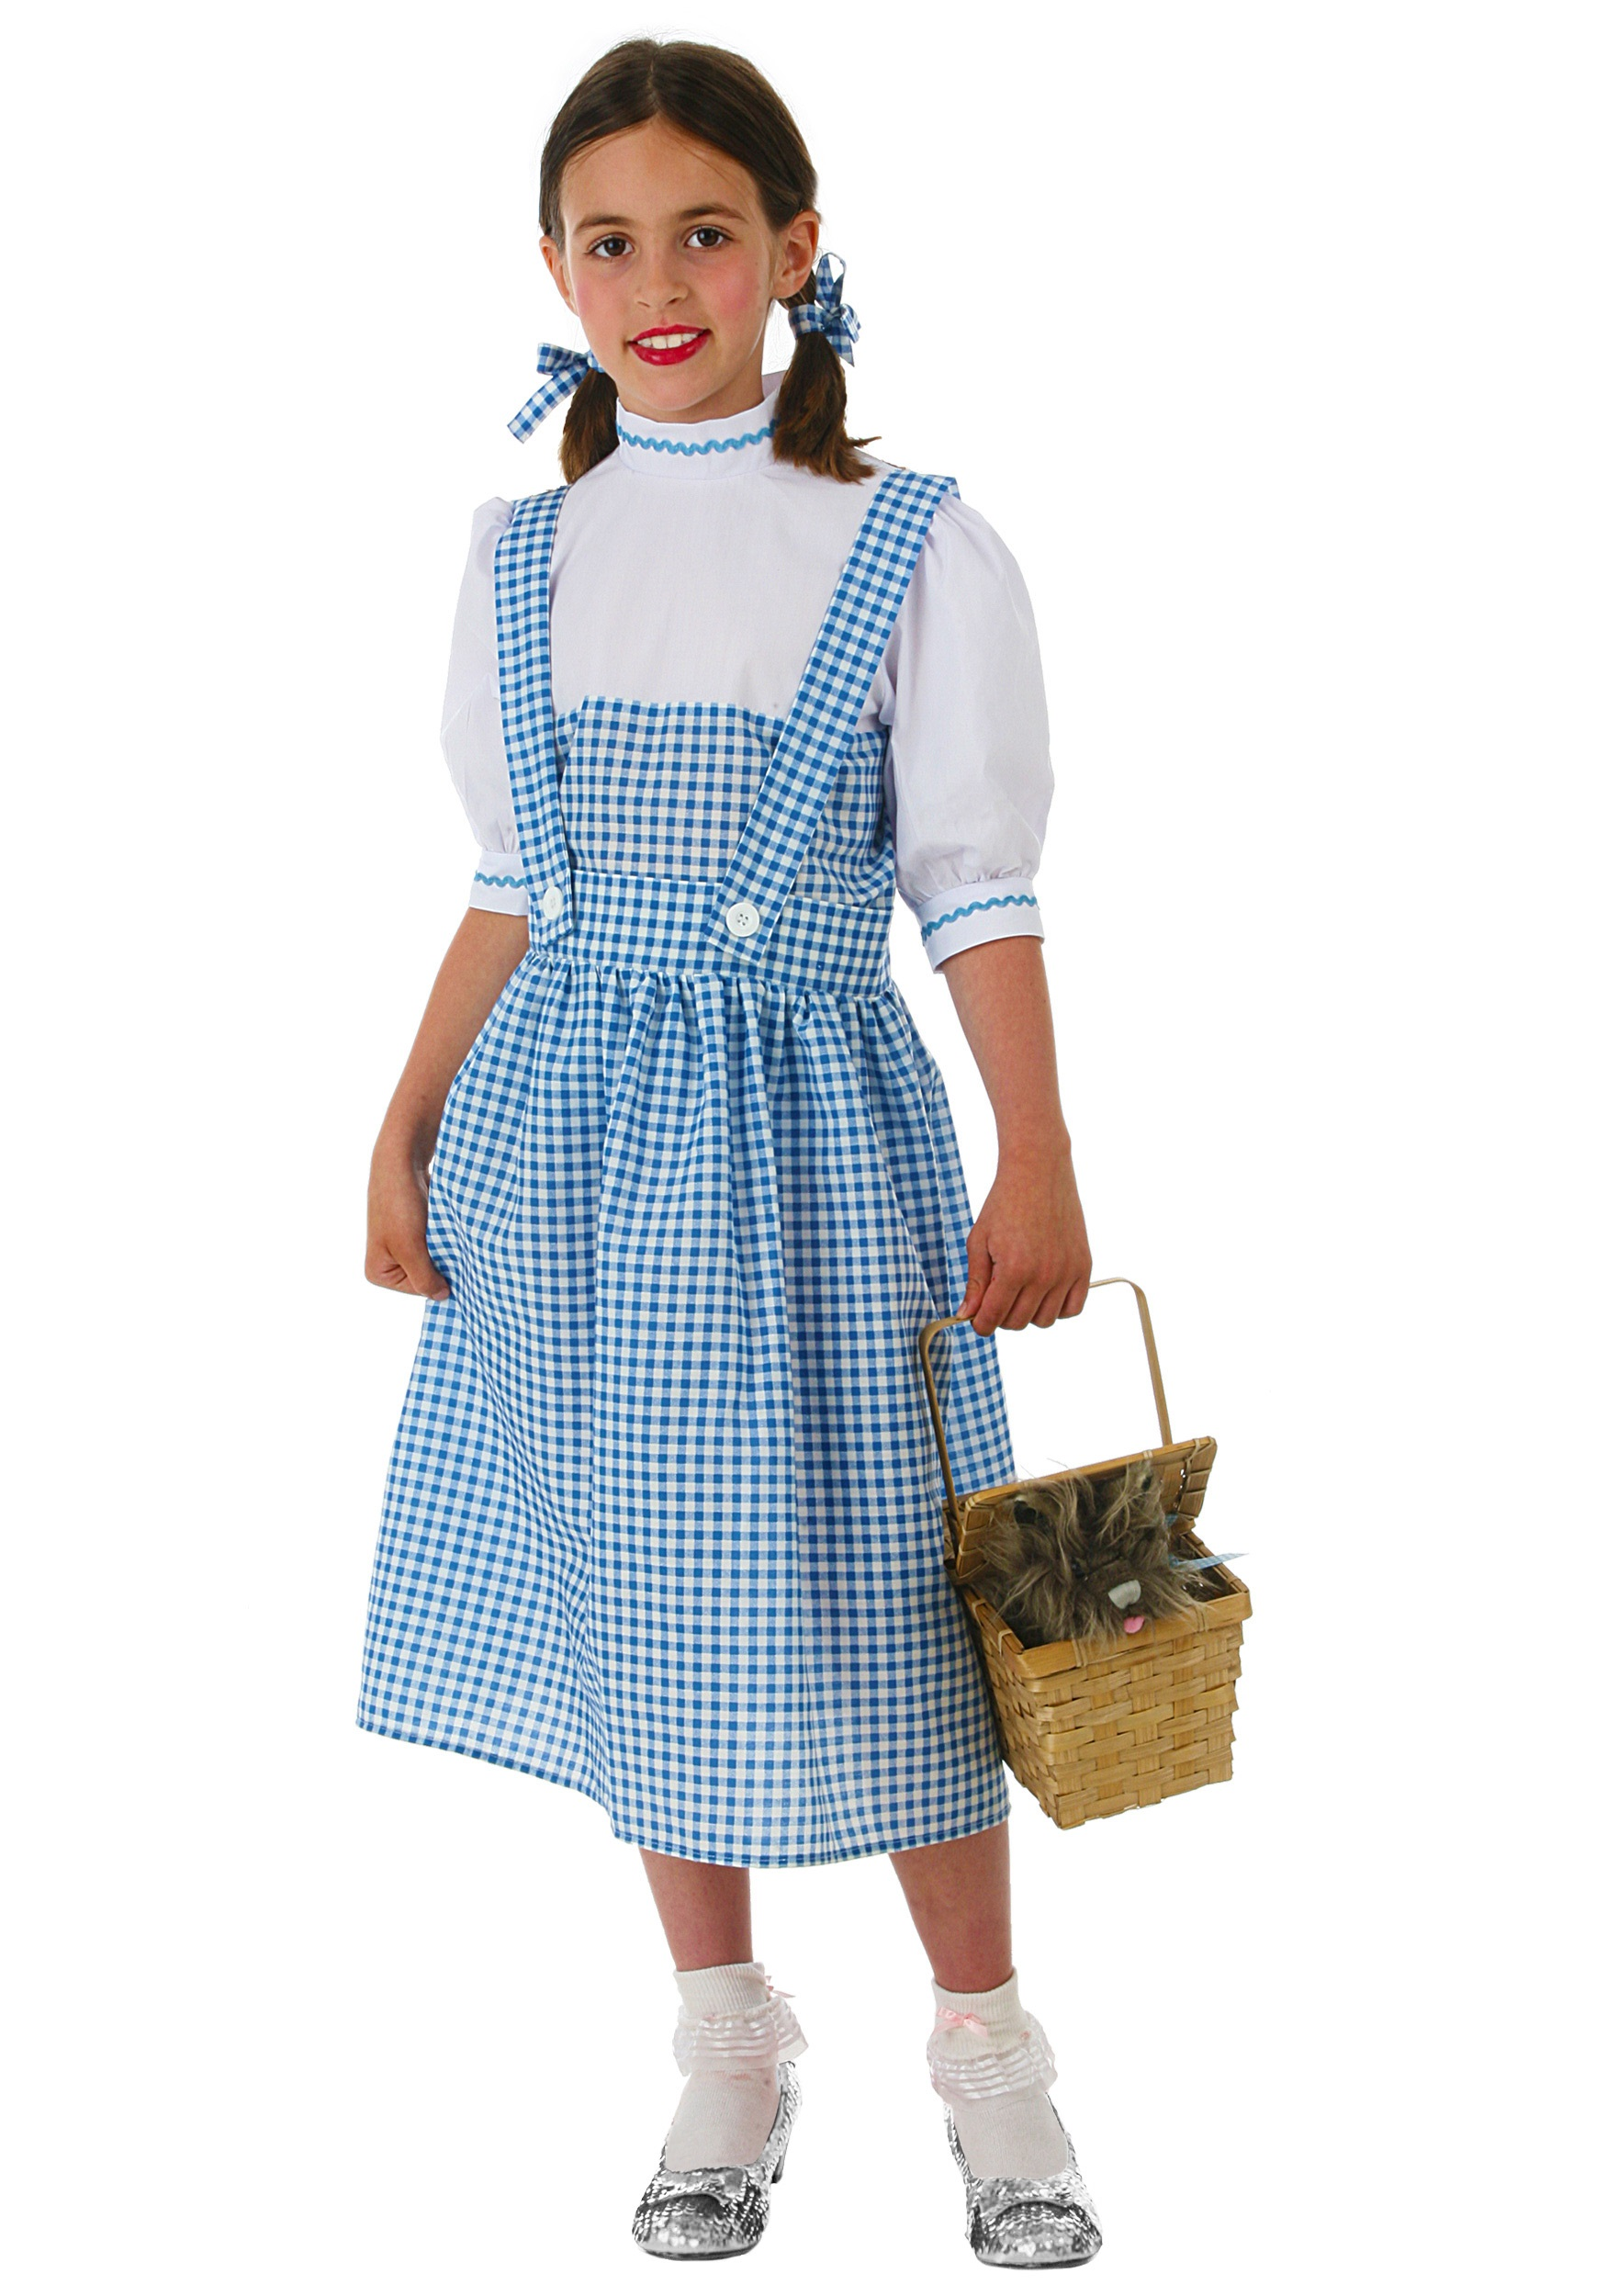 sc 1 st  Wizard of Oz Costumes & Child Kansas Girl Costume Dress